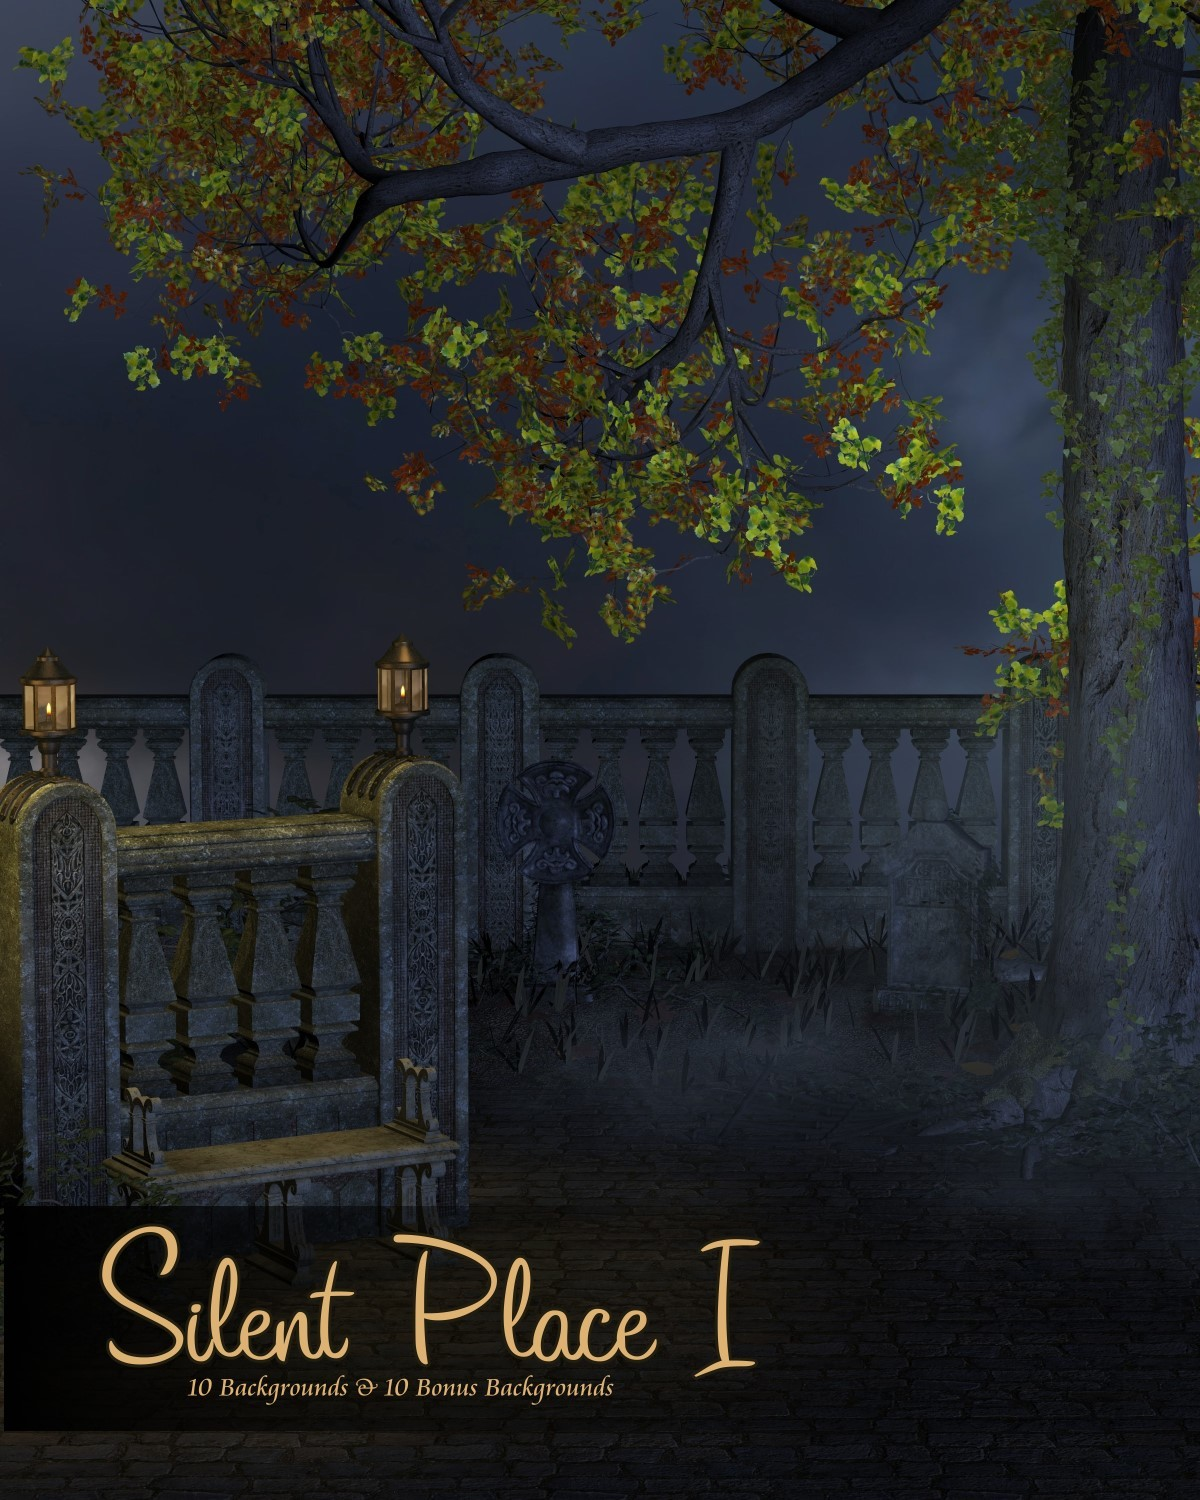 Silent Place I by hexe2009